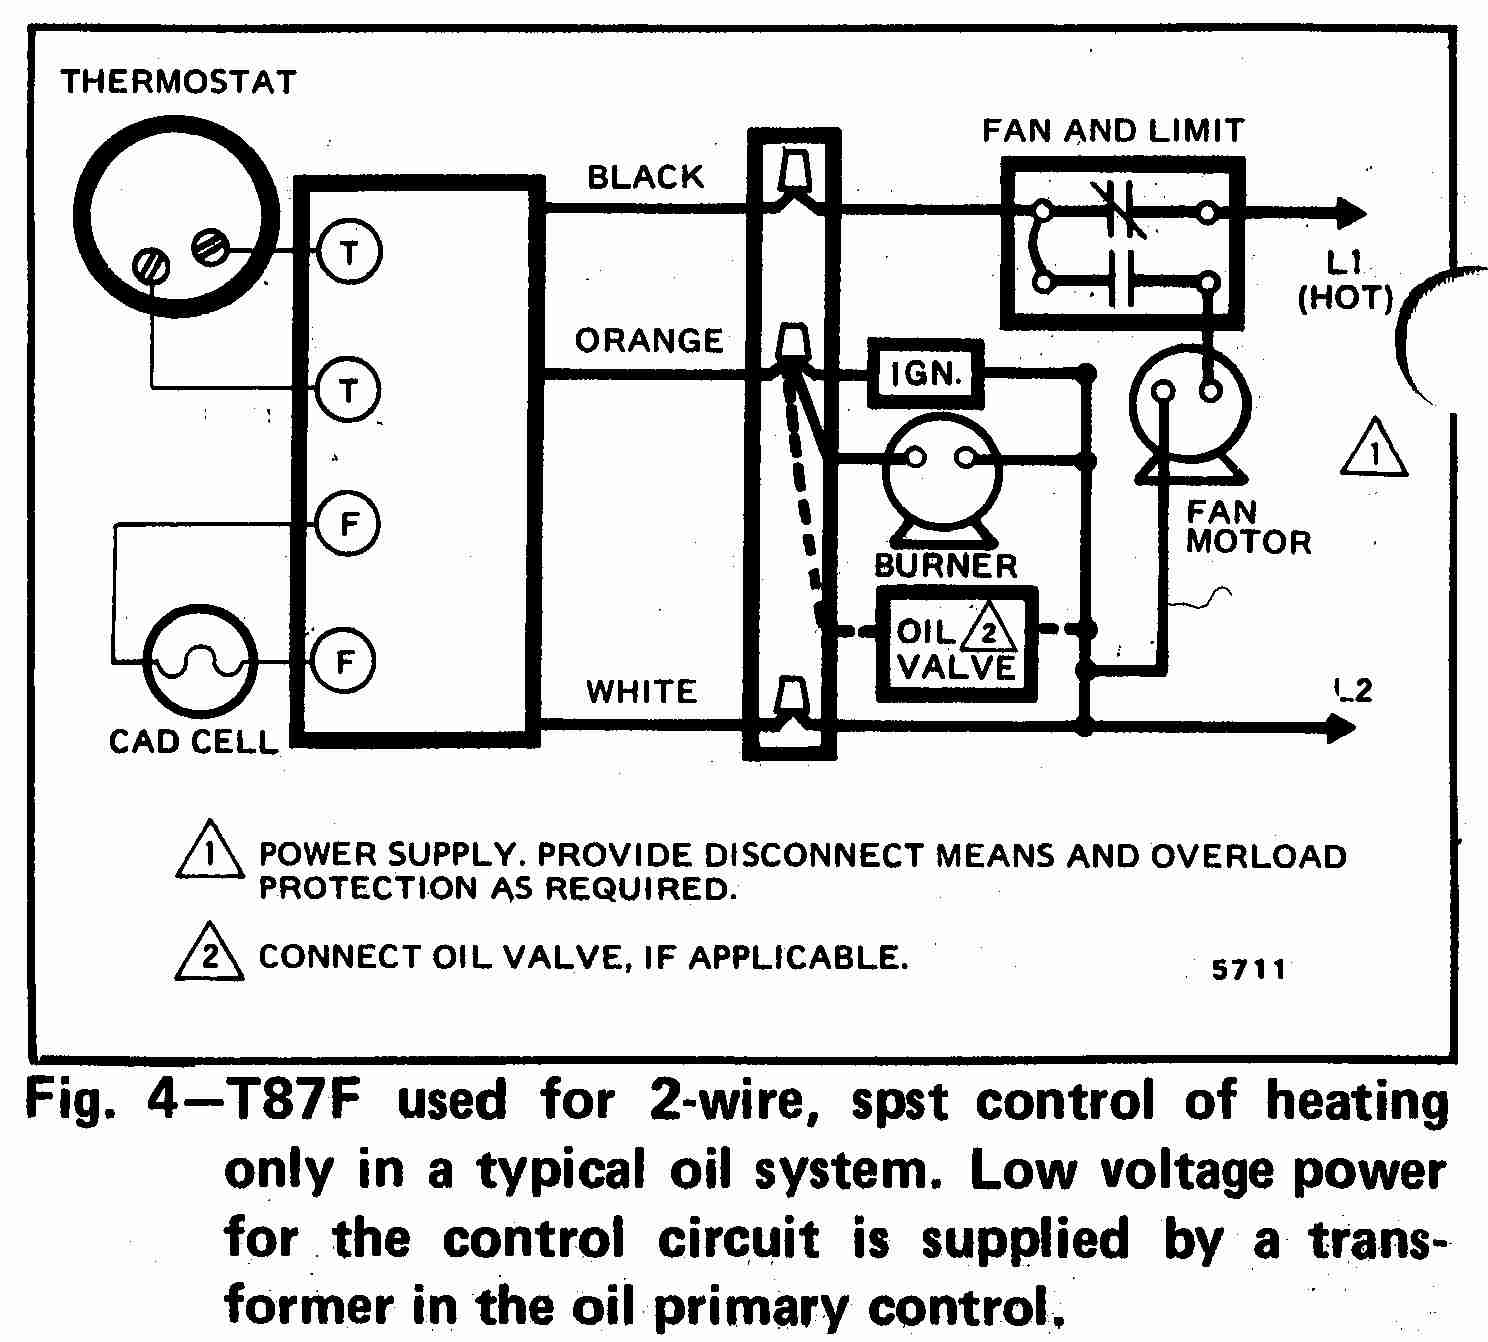 room thermostat wiring diagrams for hvac systems rh inspectapedia com hvac wire colors hvac wire colors